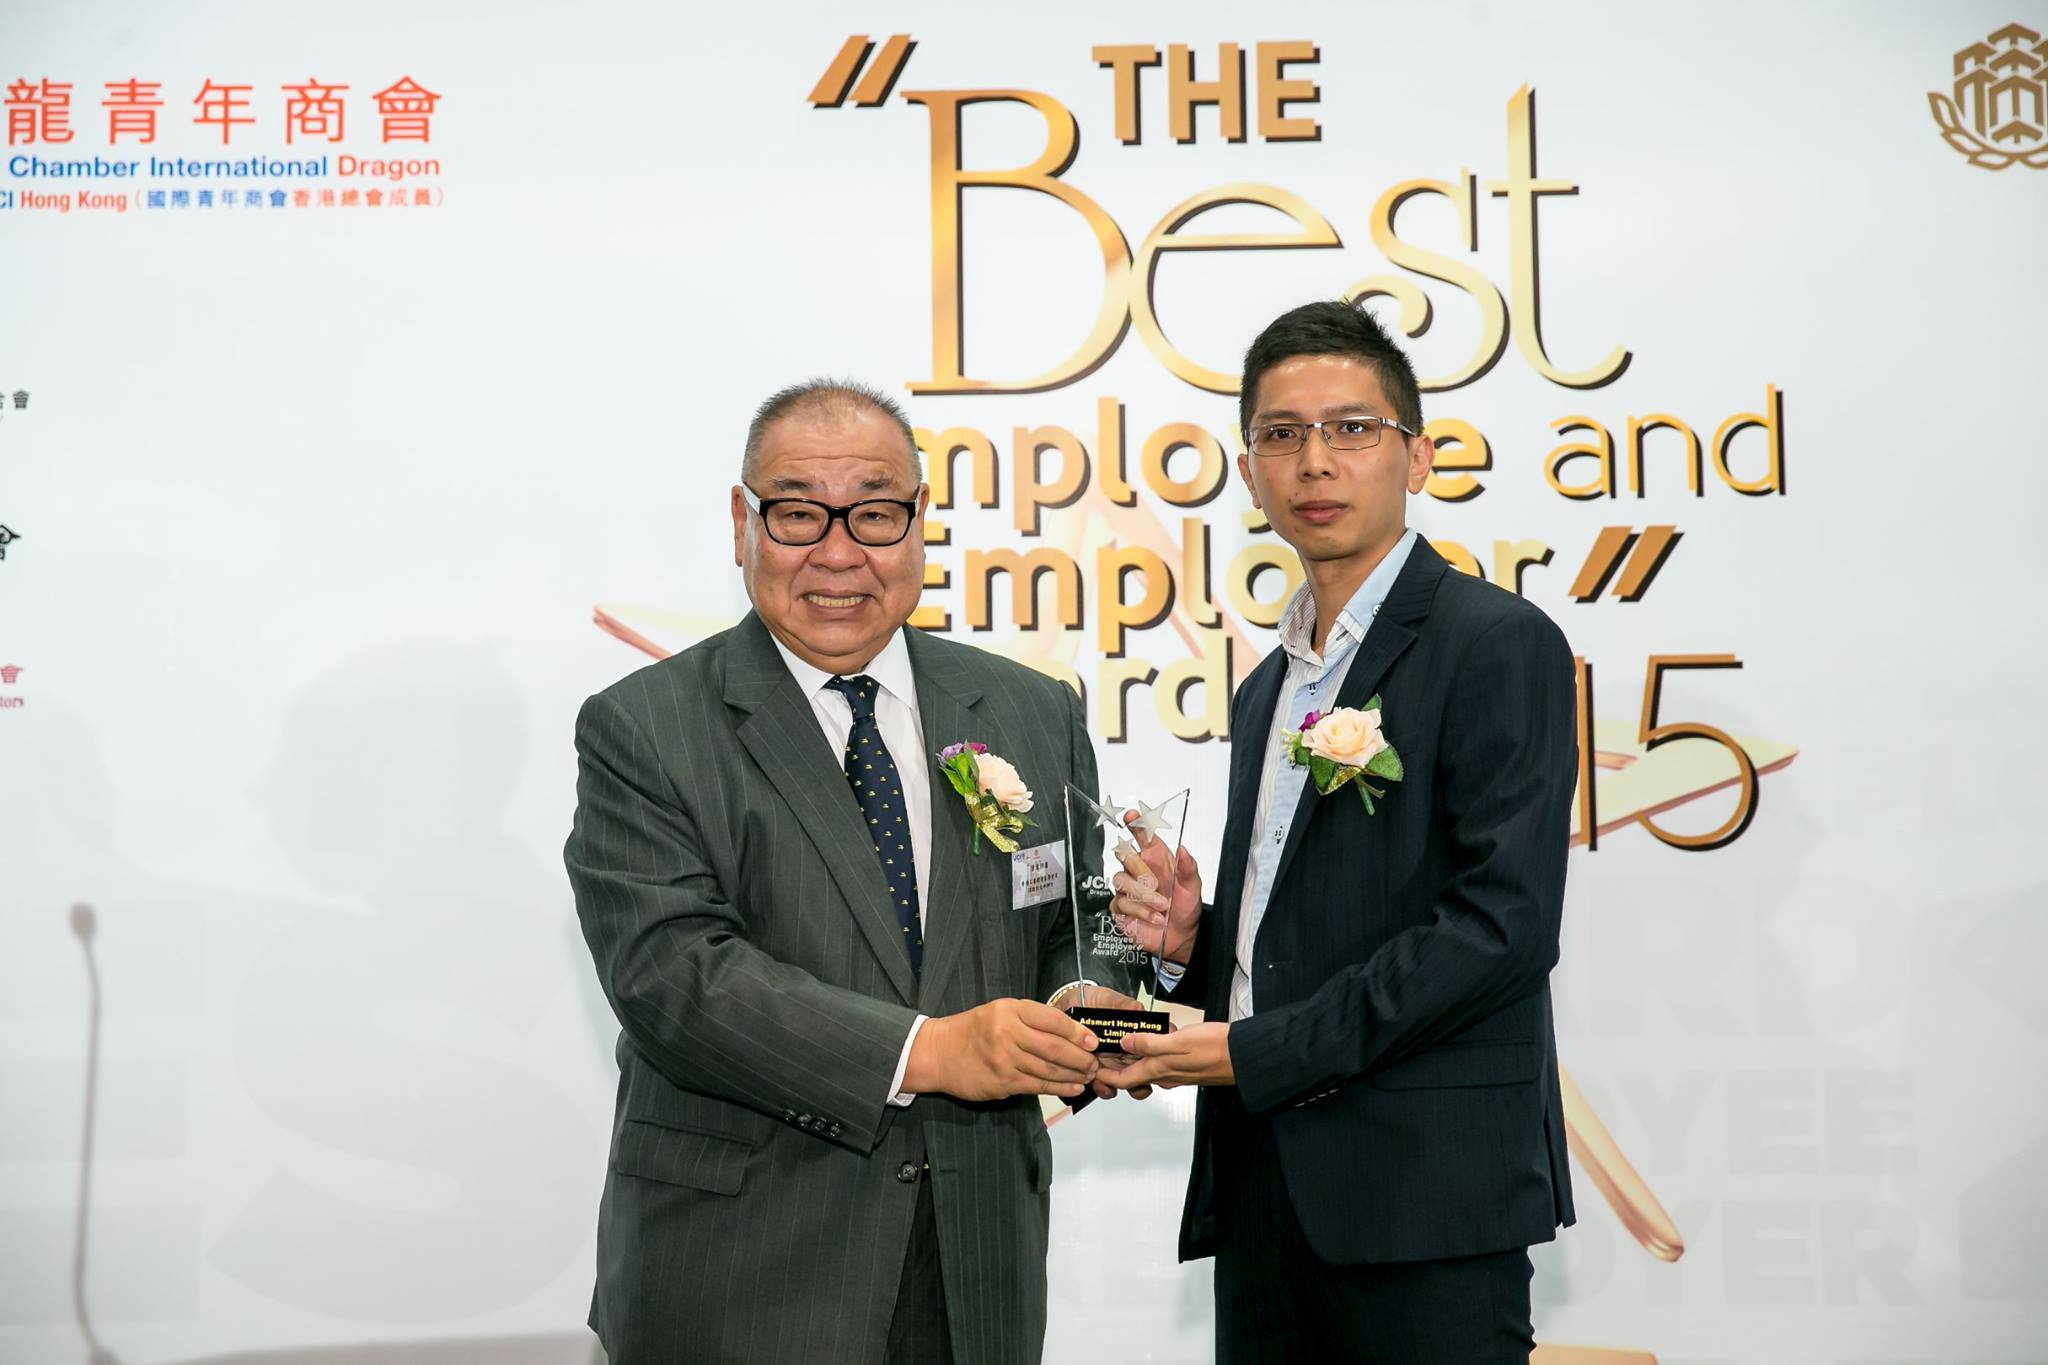 The Best Employee and Employer Award 2015-02